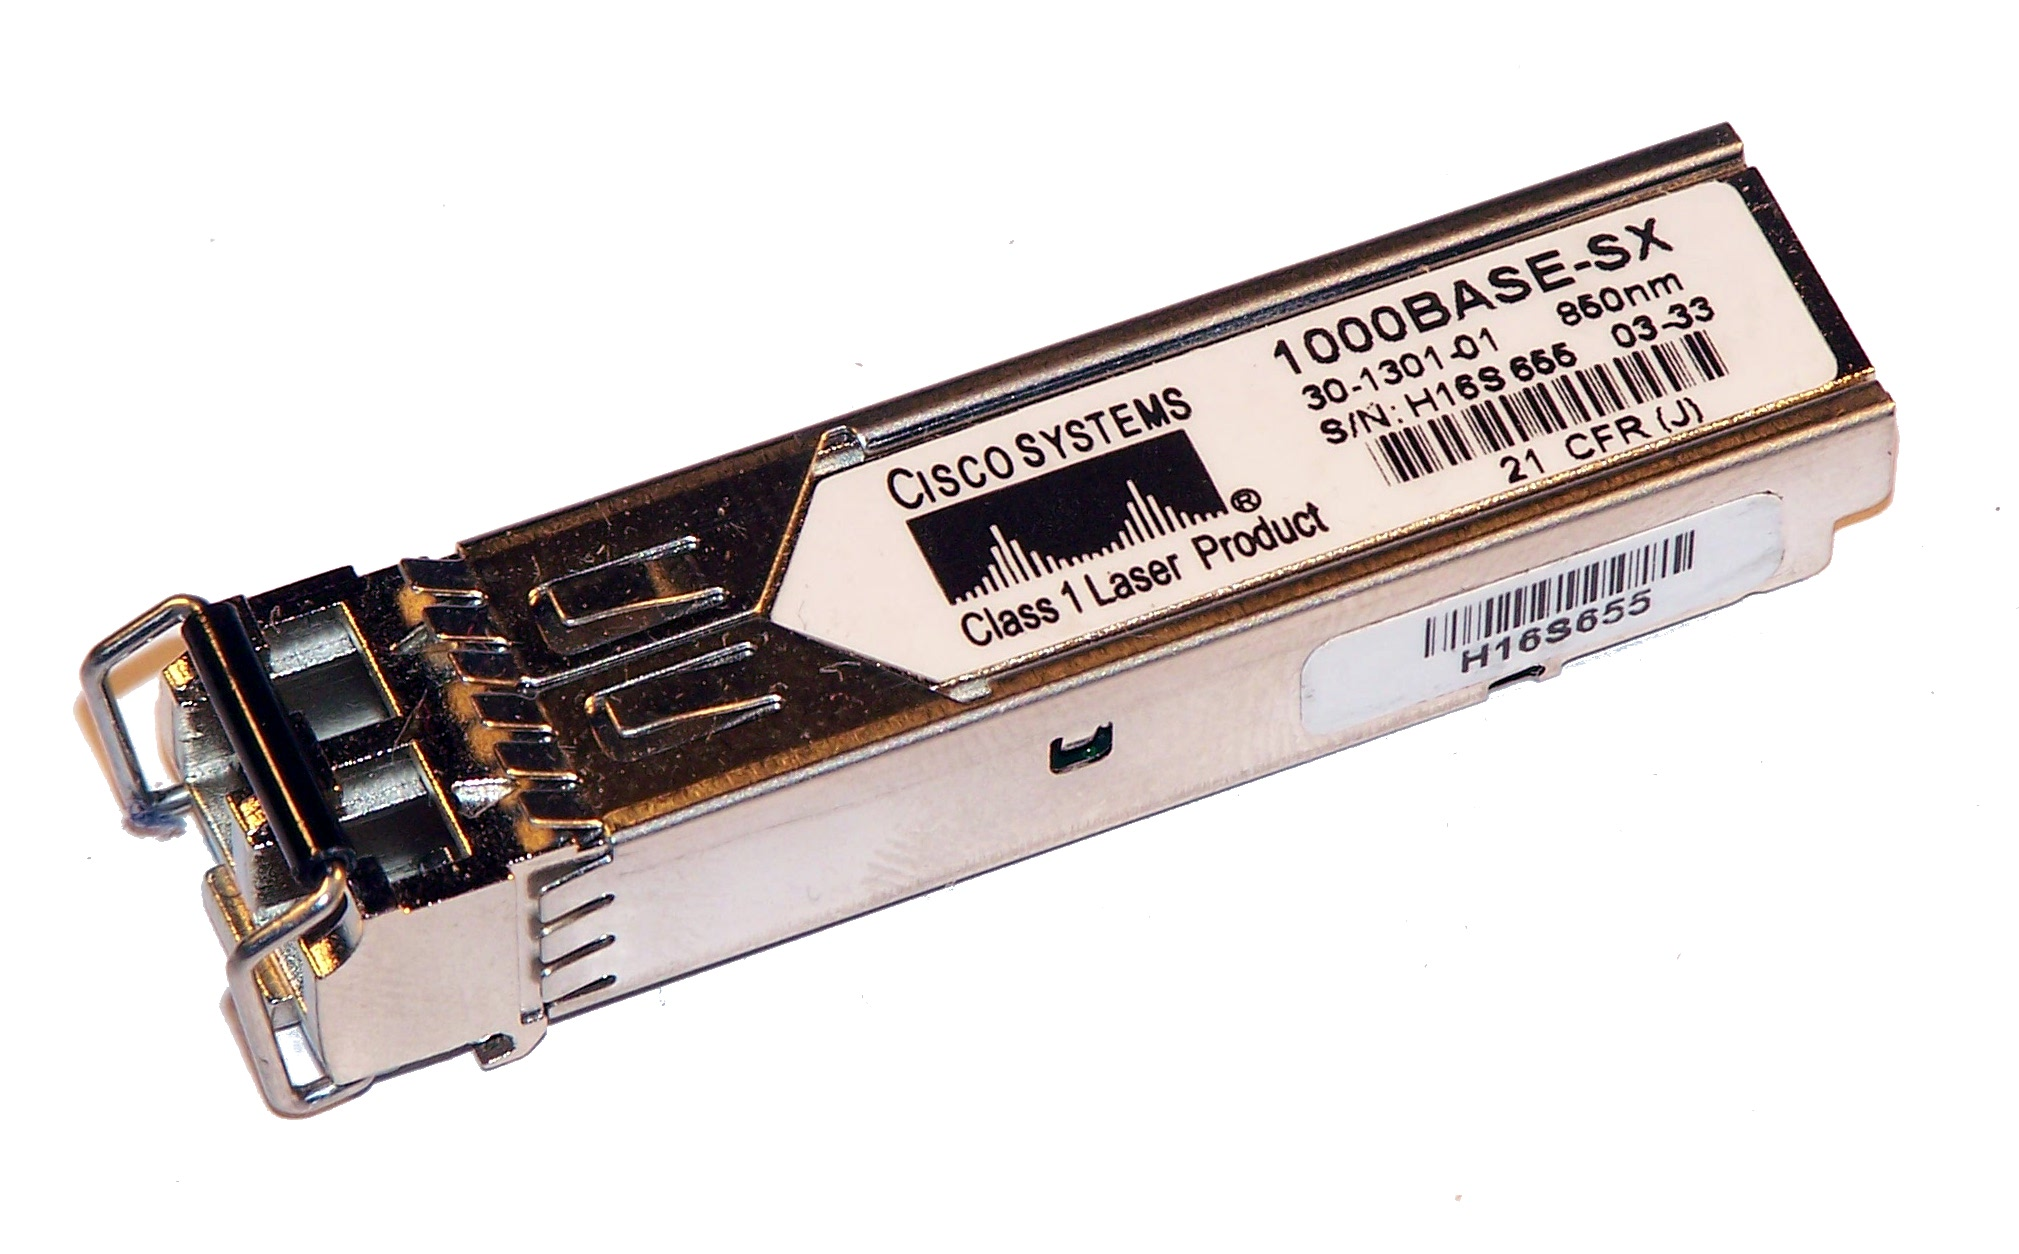 Cisco 30-1301-01 1000BASE-SX SFP 850nm GBIC GLC-SX-MM= Transceiver Thumbnail 1